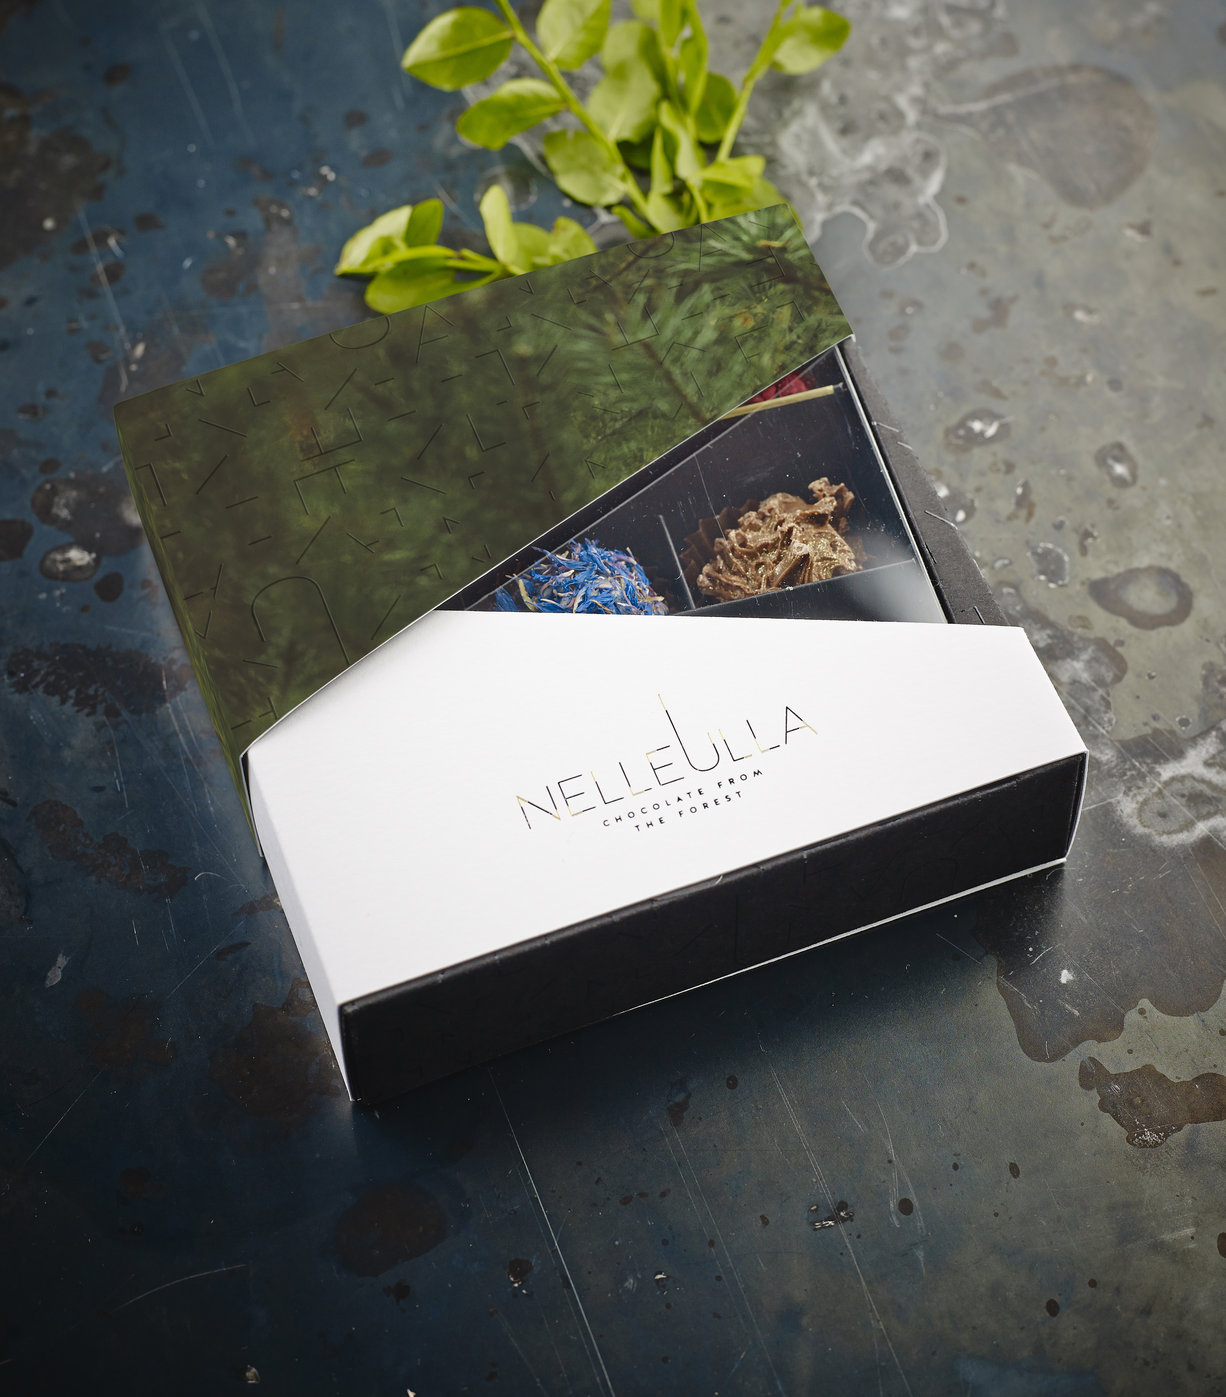 Any 9 or 16 truffle selection in NelleUlla Wild box